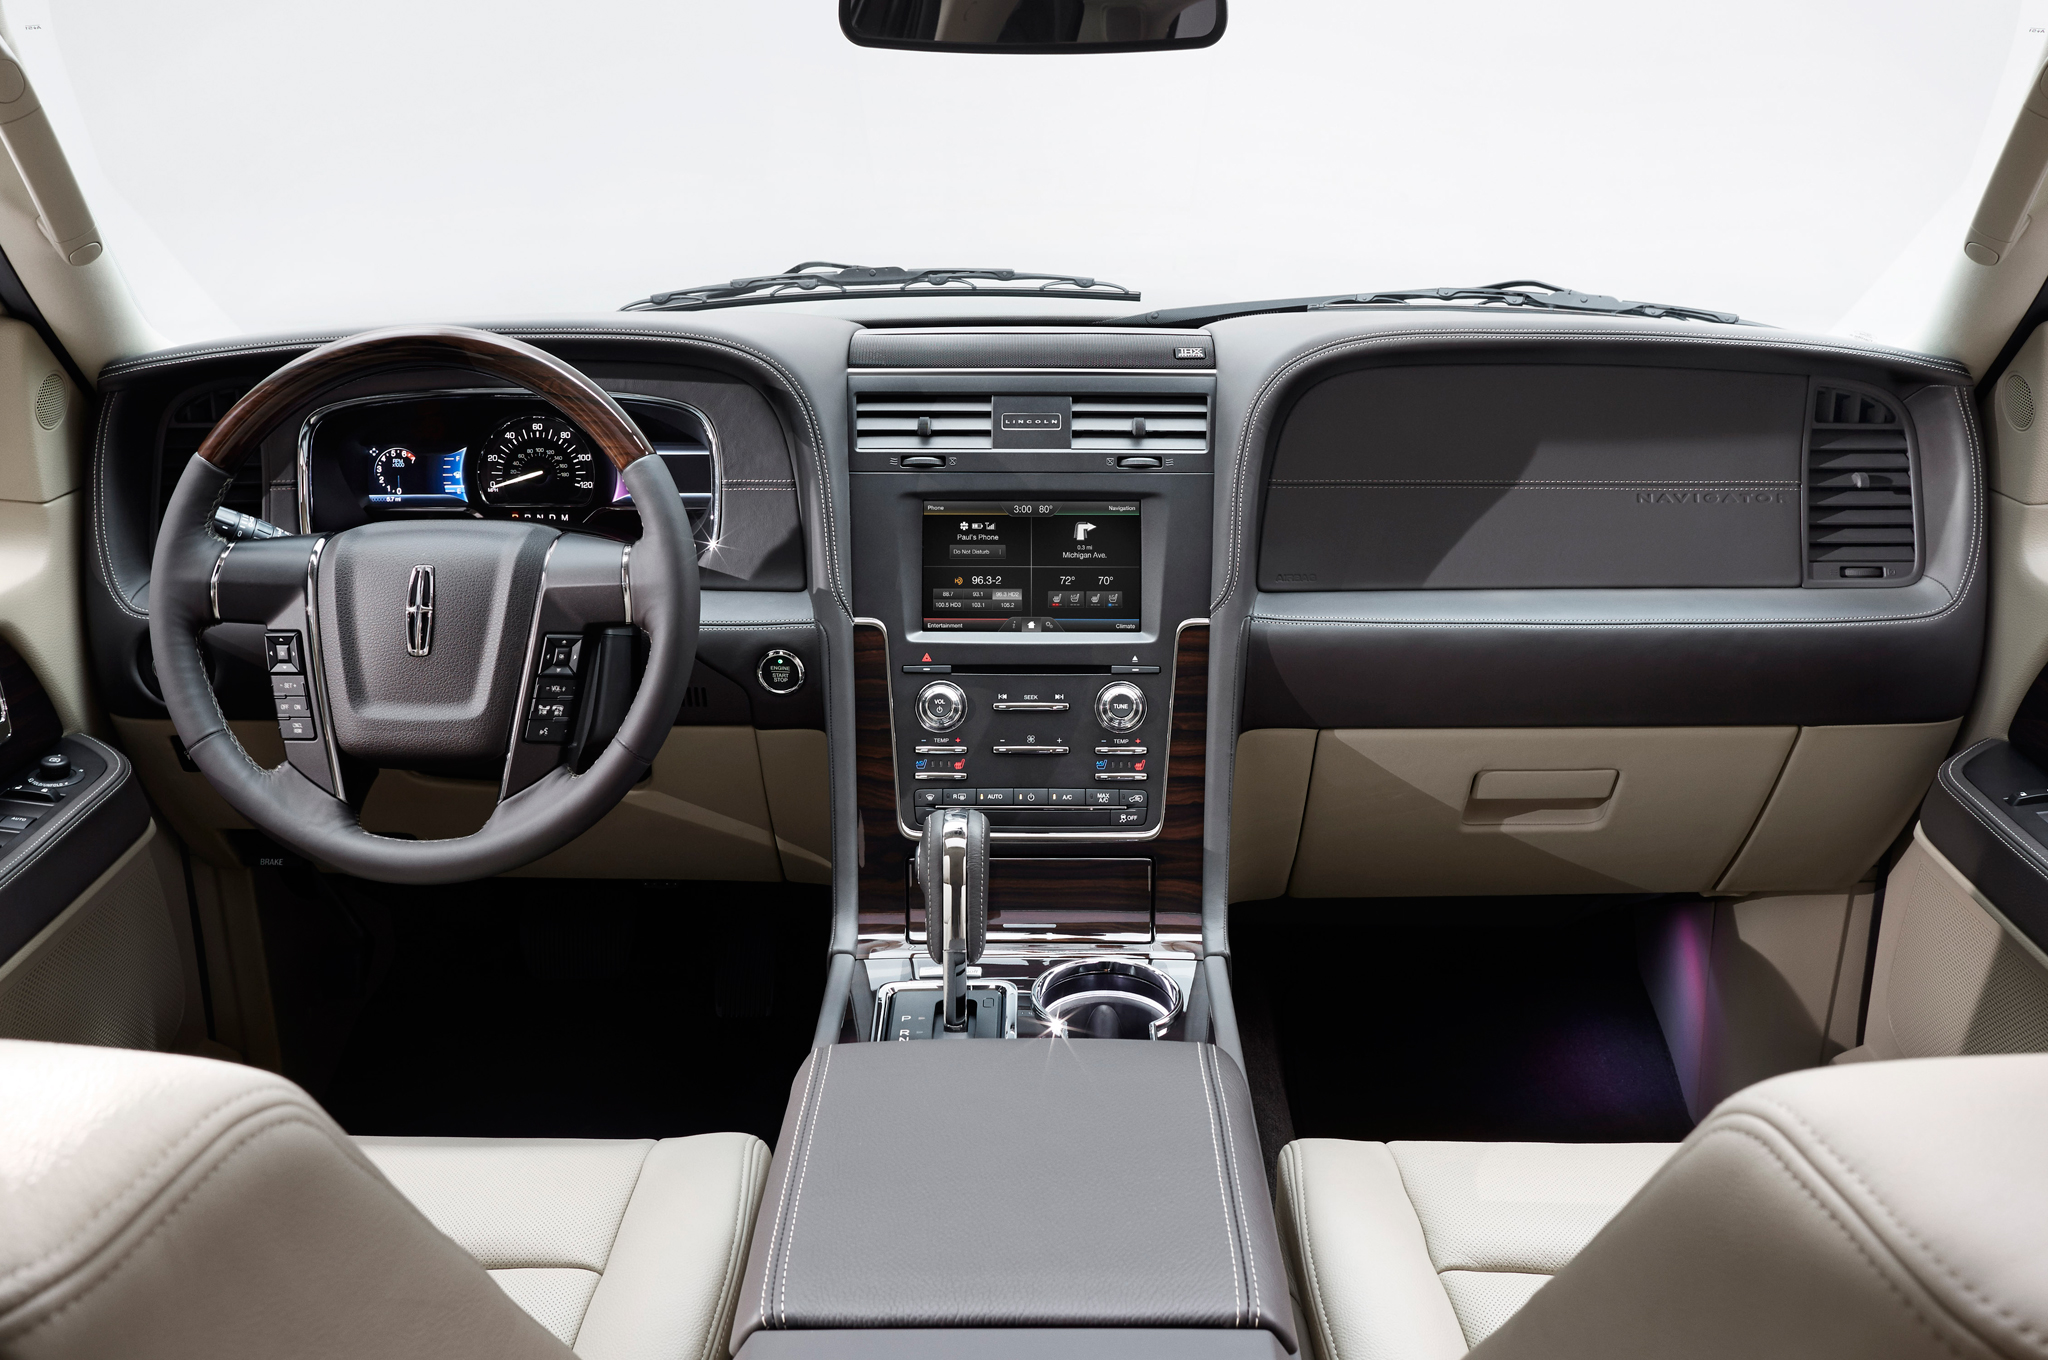 2015 Lincoln Navigator Interior Dashboard and Cockpit